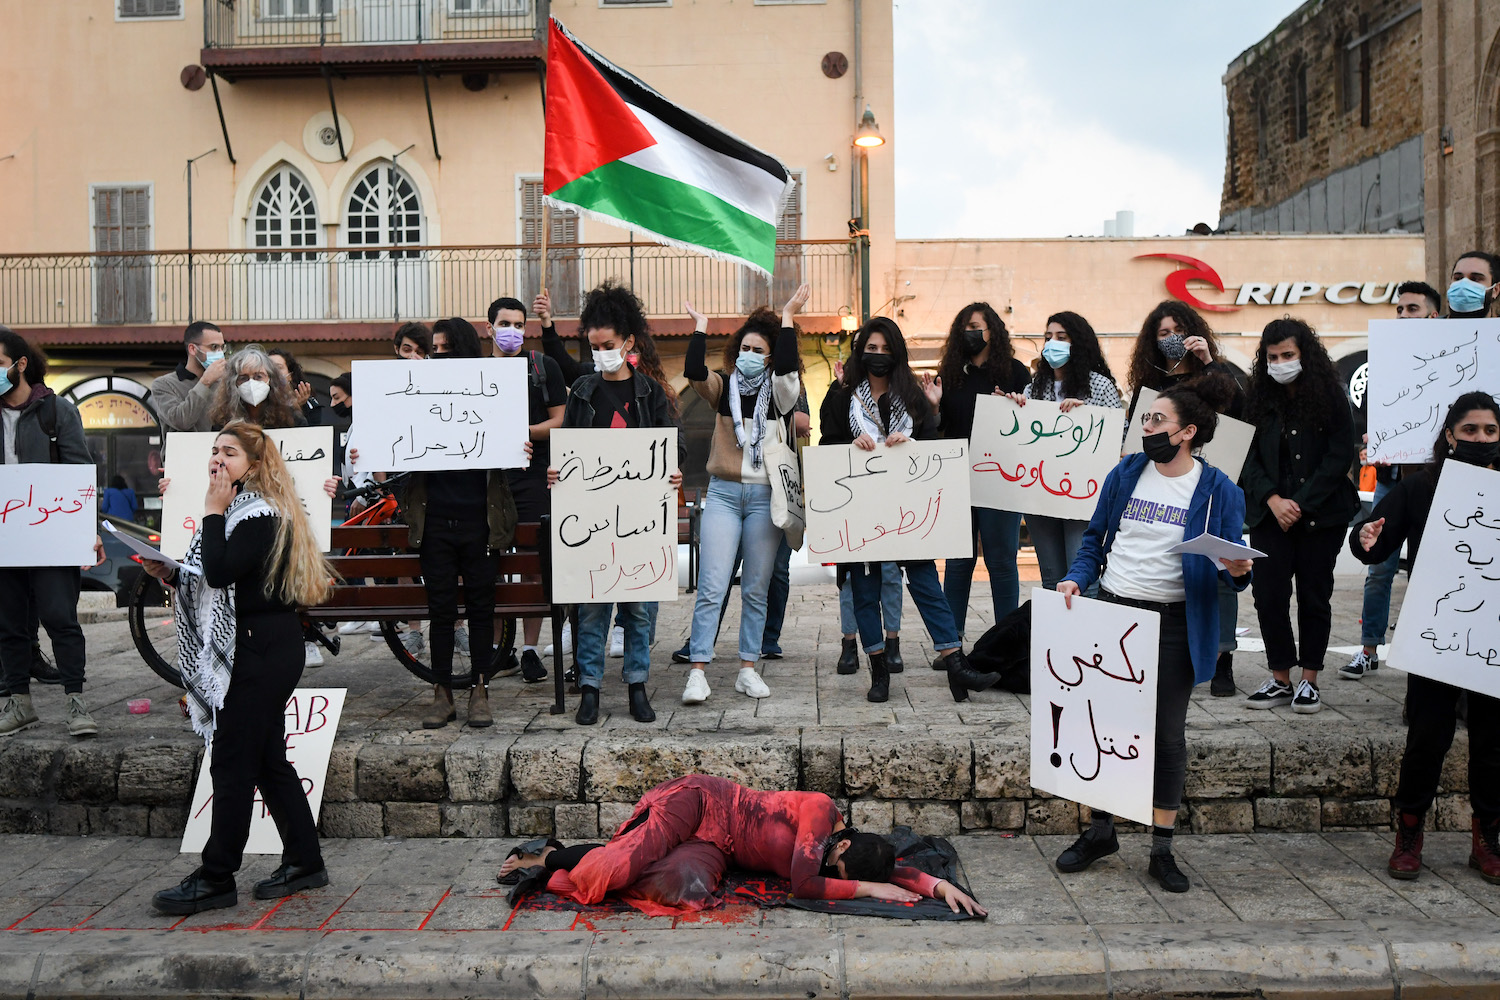 Palestinian citizens in Jaffa protest violent crime in the so-called mixed cities, February 6, 2021. (Avshalom Sassoni/Flash90)